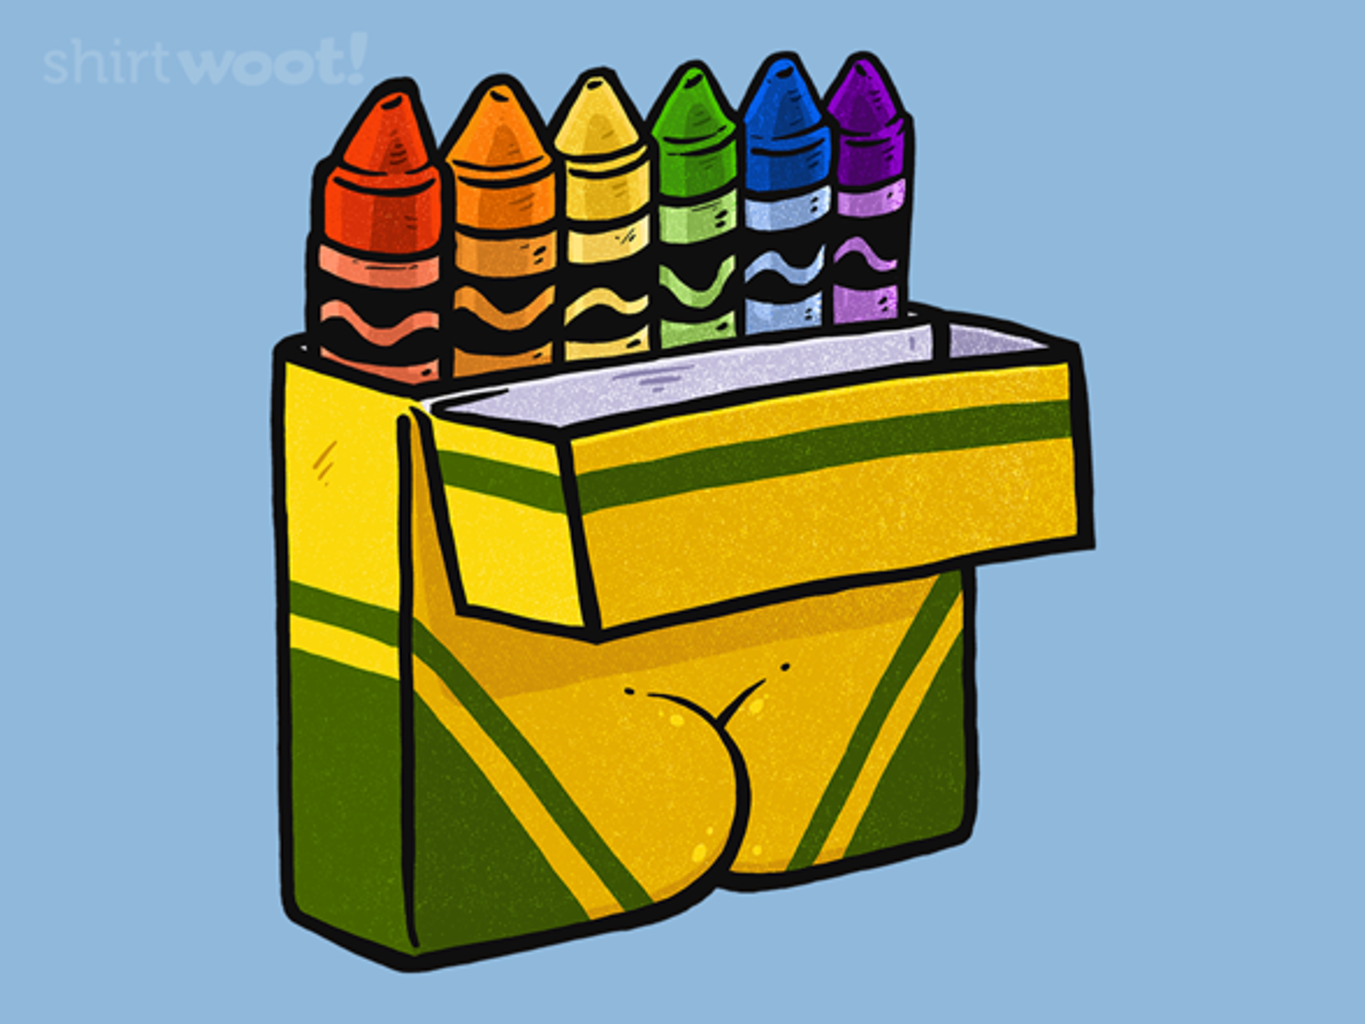 Woot!: Bootyfull Crayons